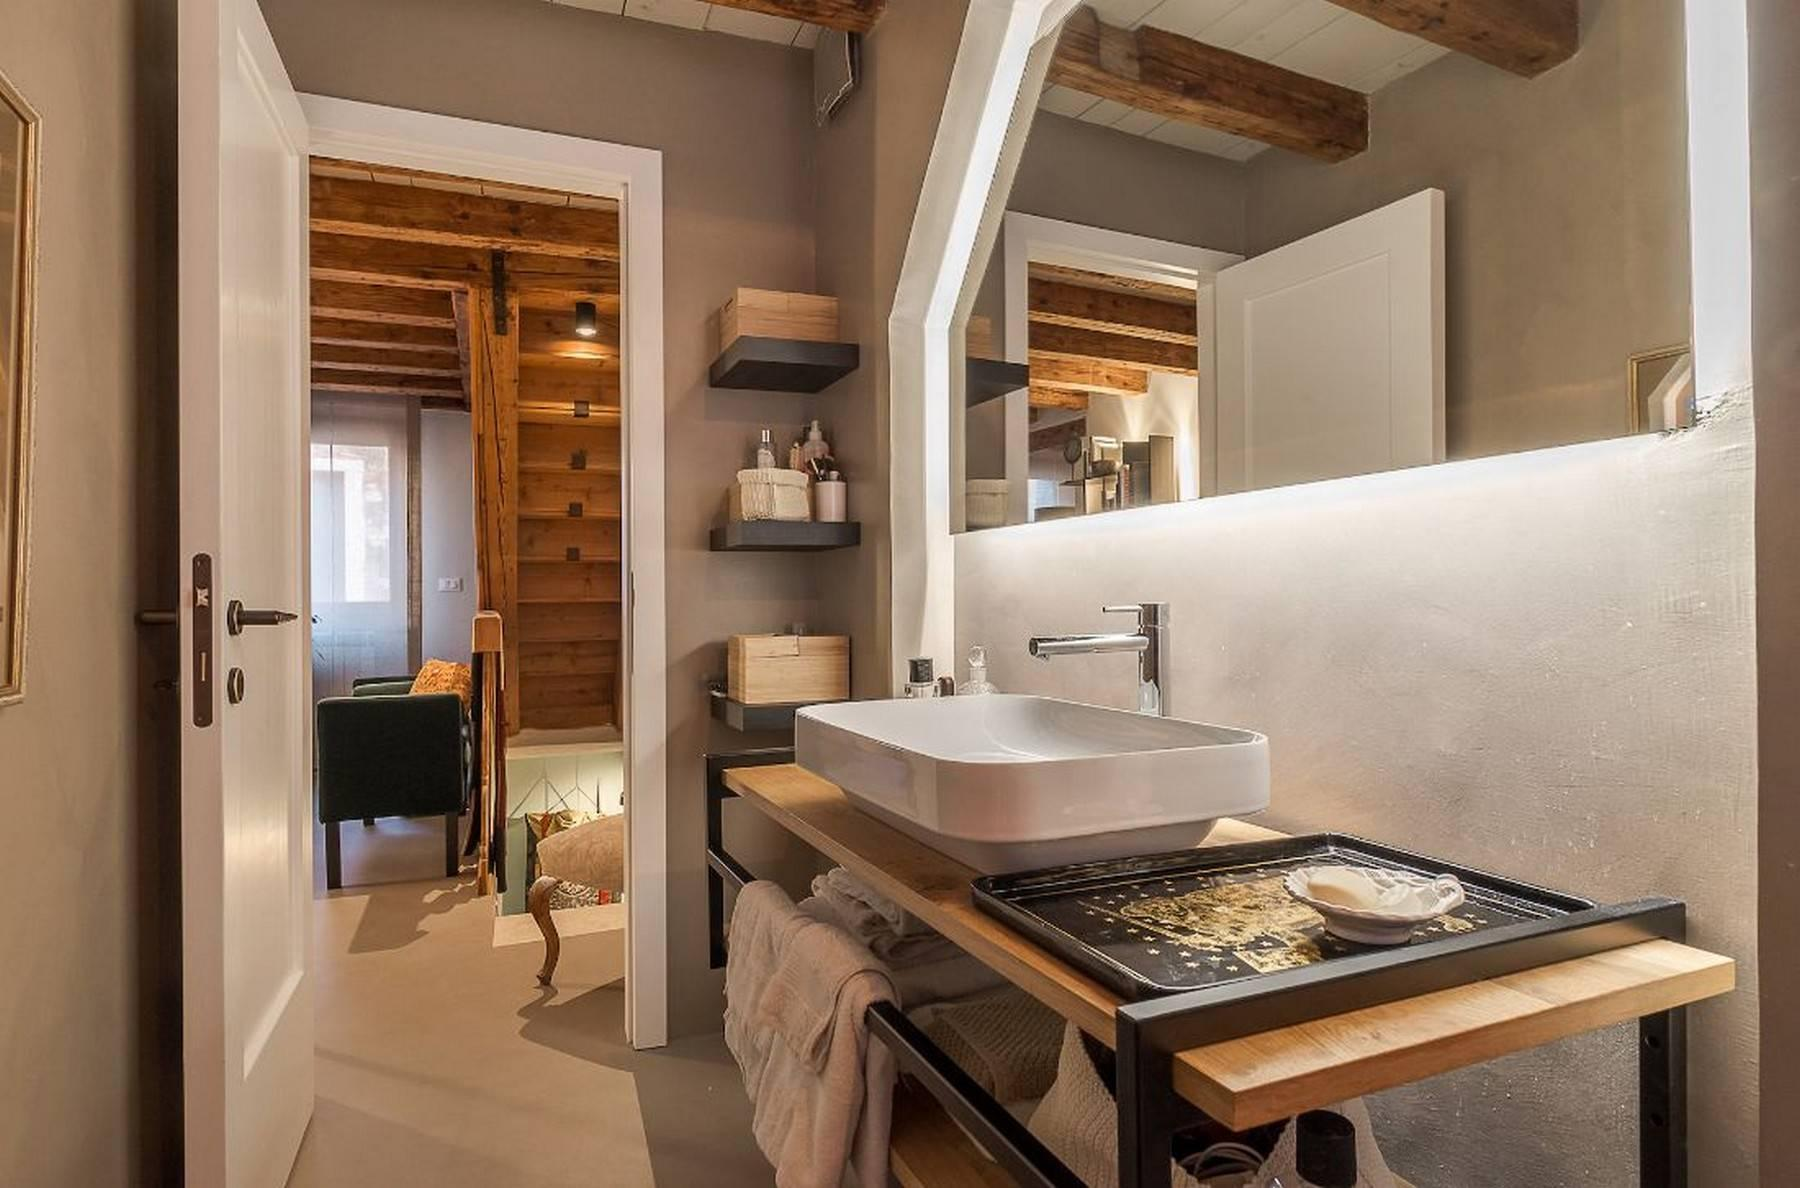 Castello design duplex with charming roof terrace - 8